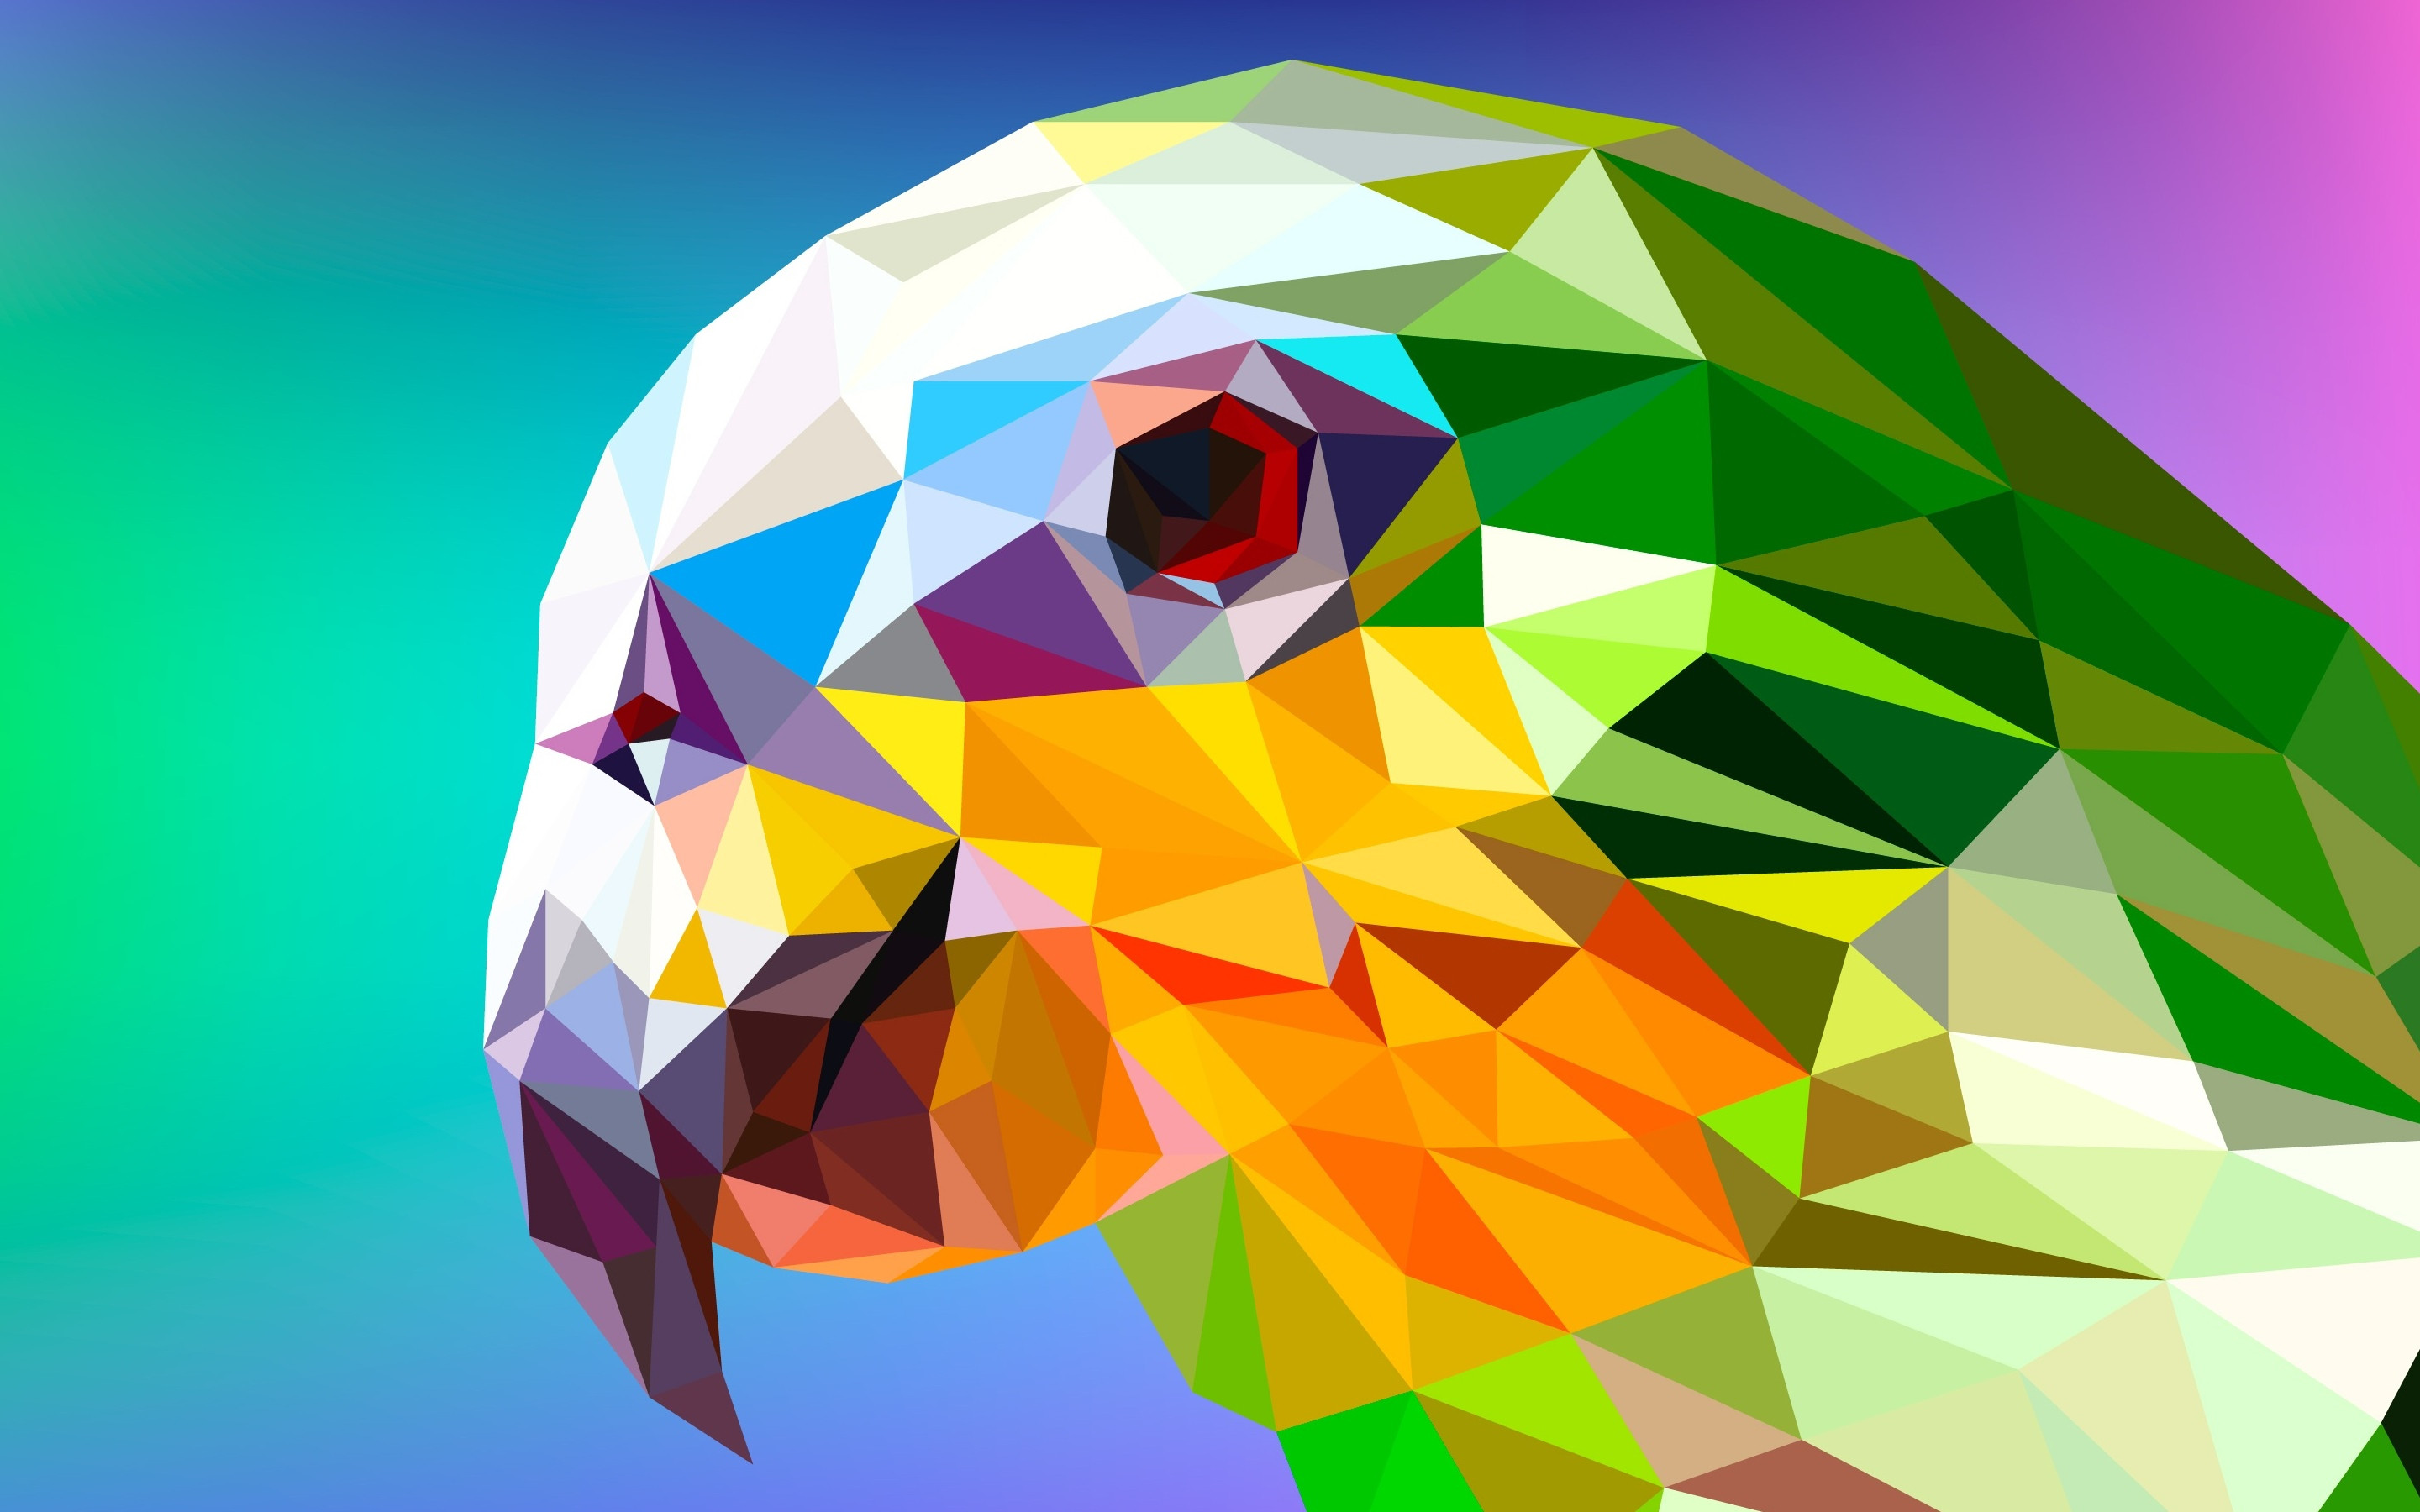 Low Poly Illustration: Parrot | 2880x1800 wallpaper